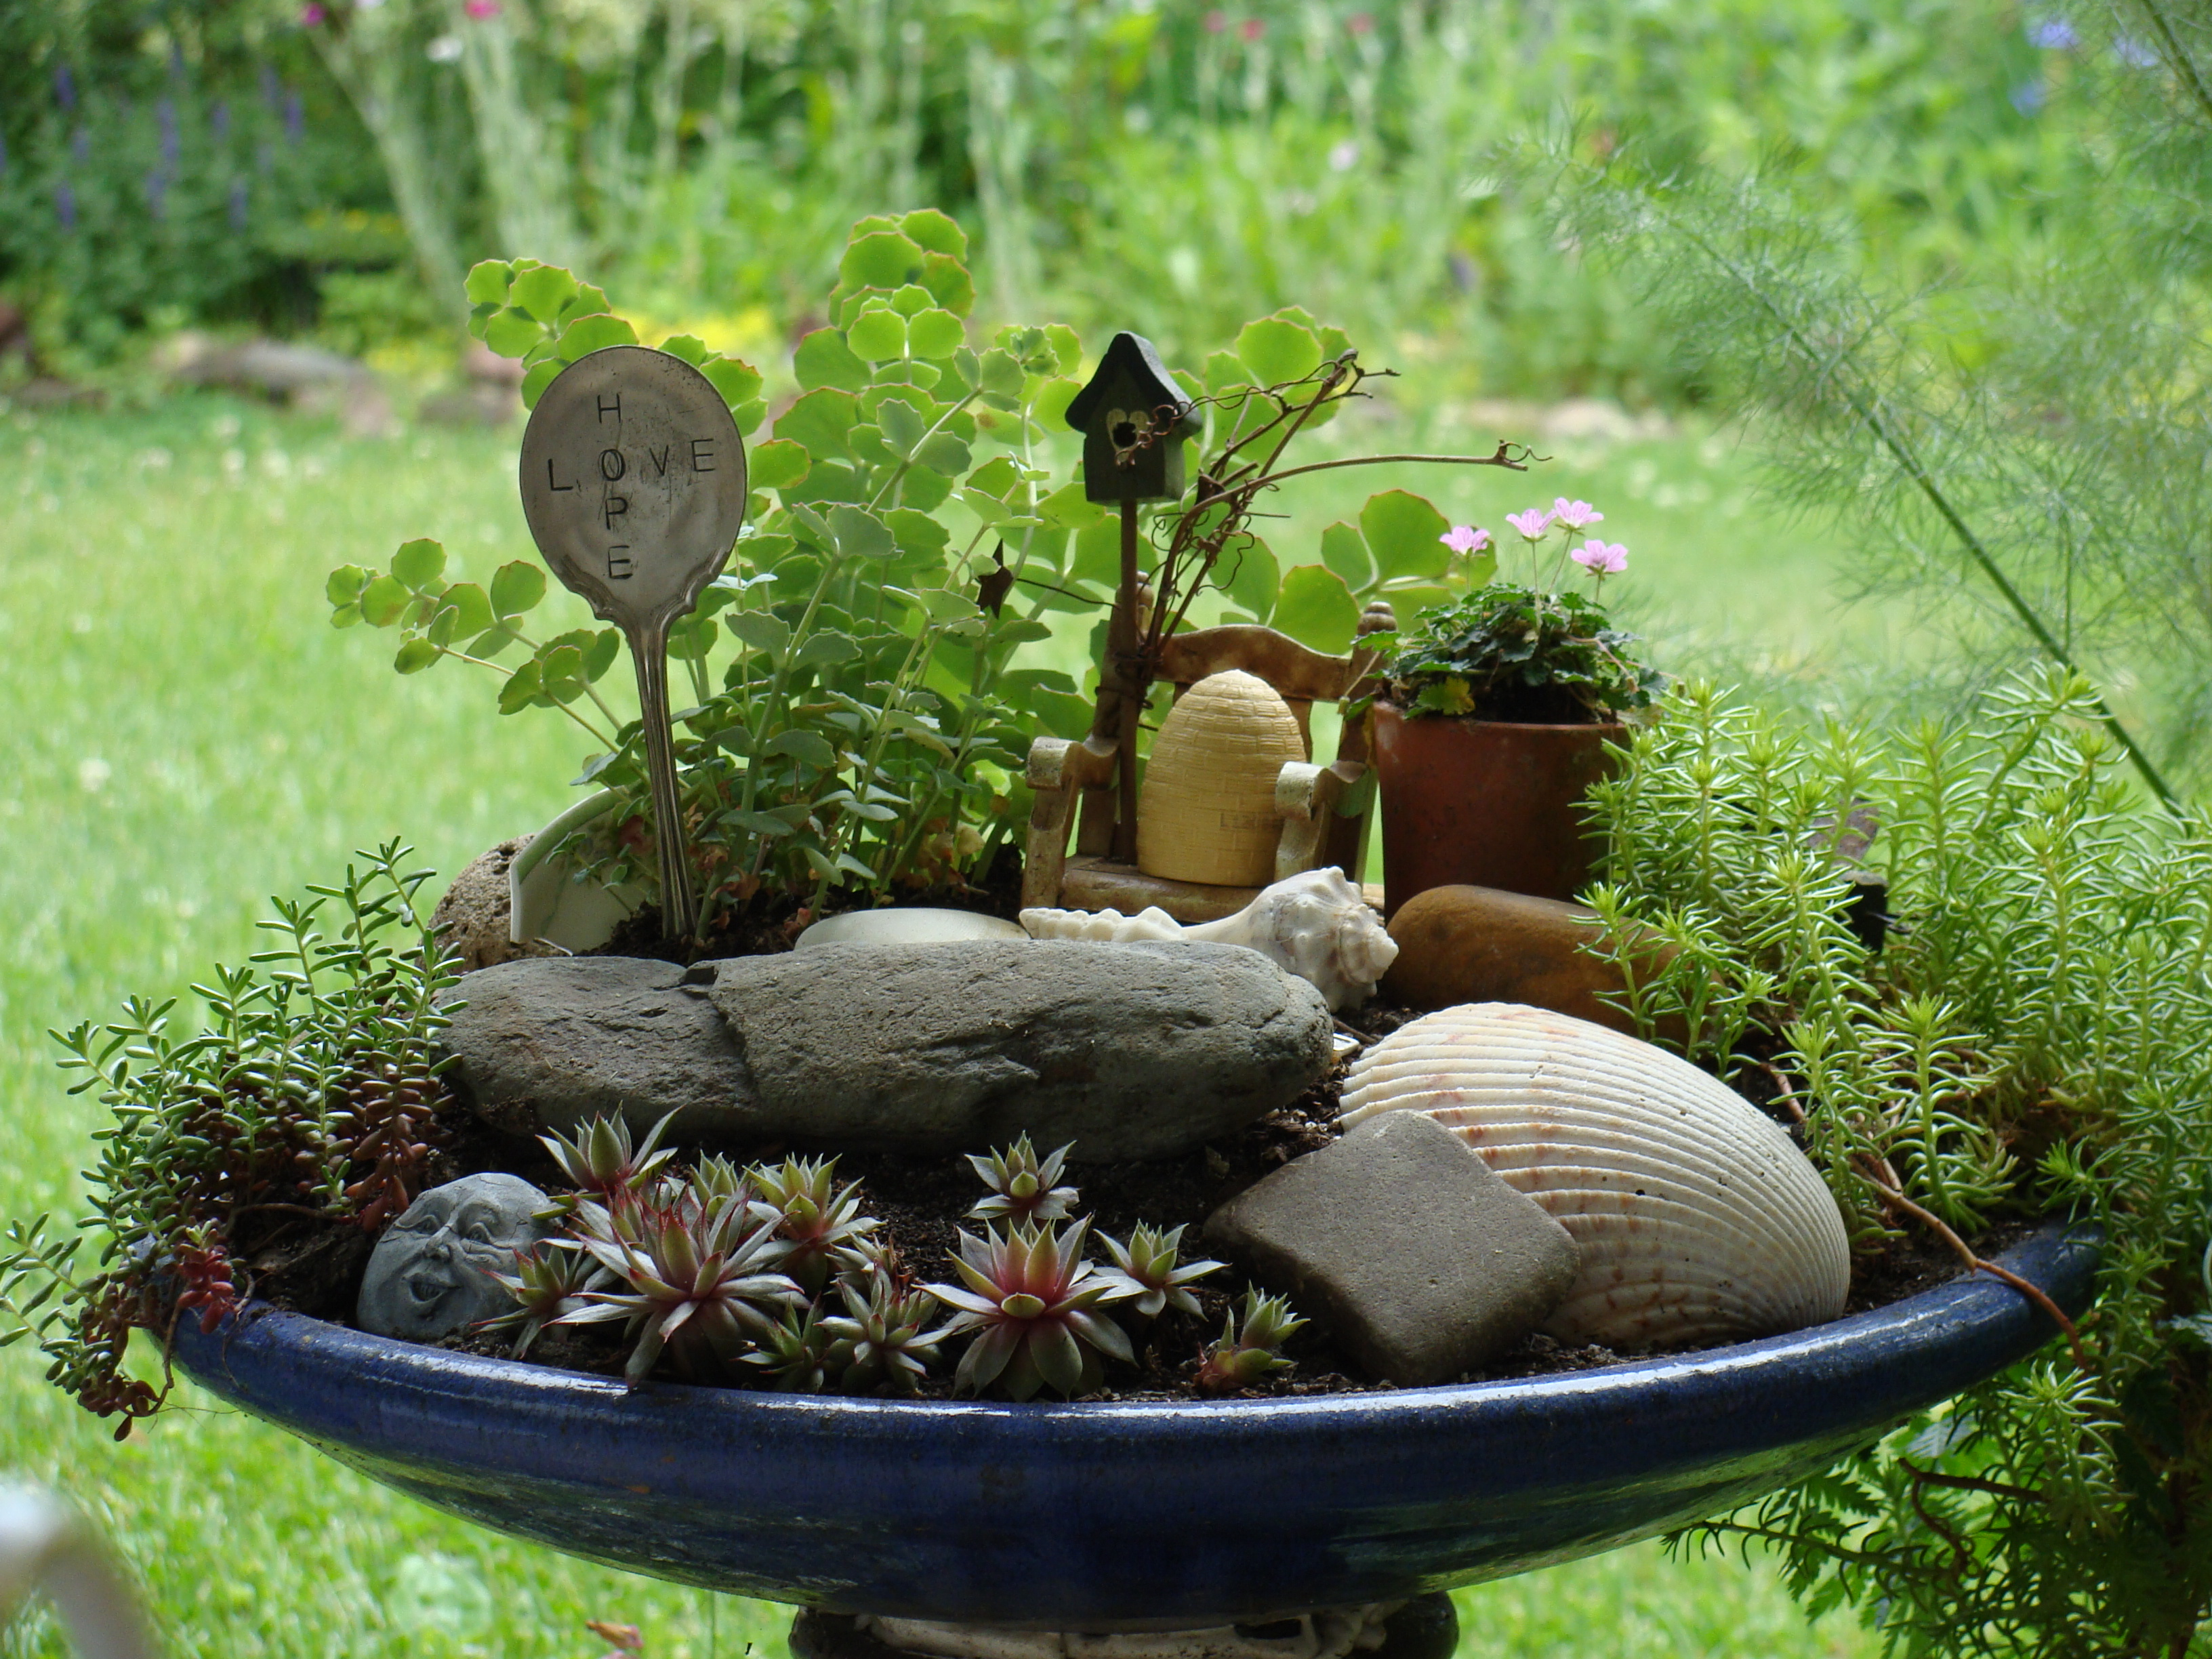 Gardens ideas bath decor birdbaths mothers earth minis Small garden fairies